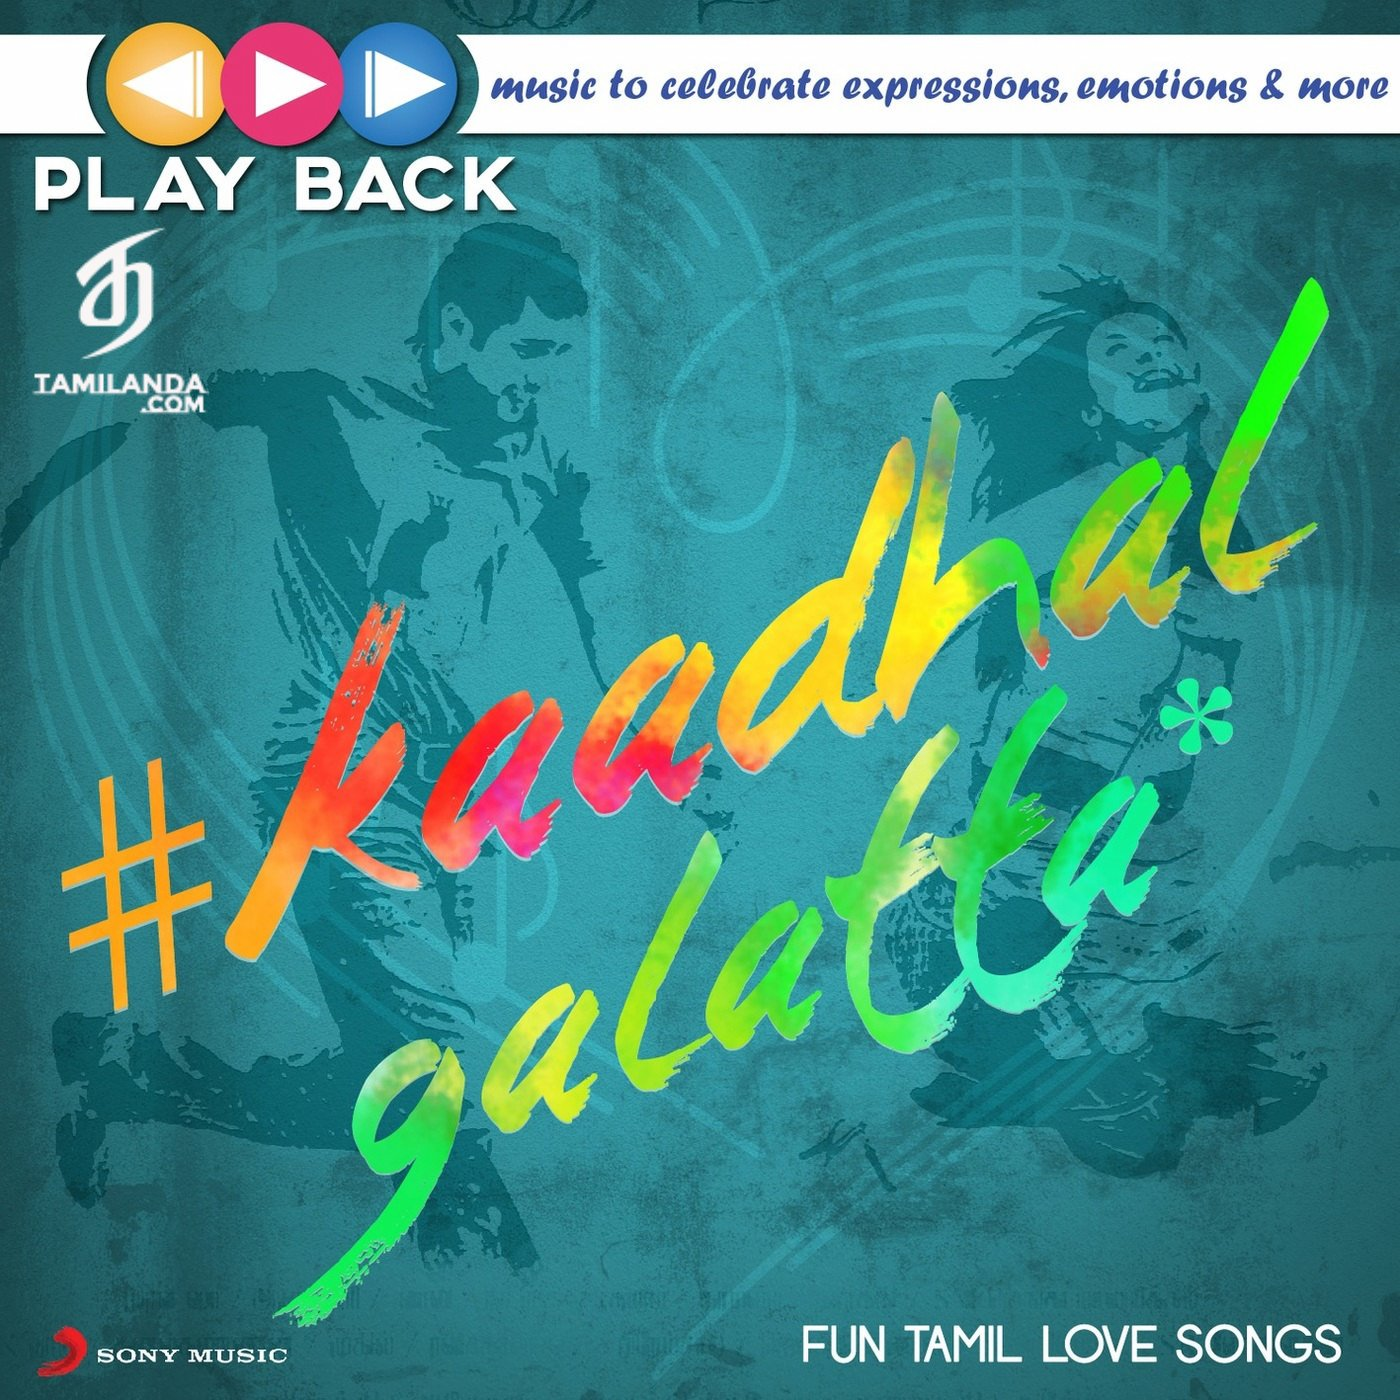 Playback: Kaadhal Galatta – Fun Tamil Love Songs FLAC Songs [50 Tracks]